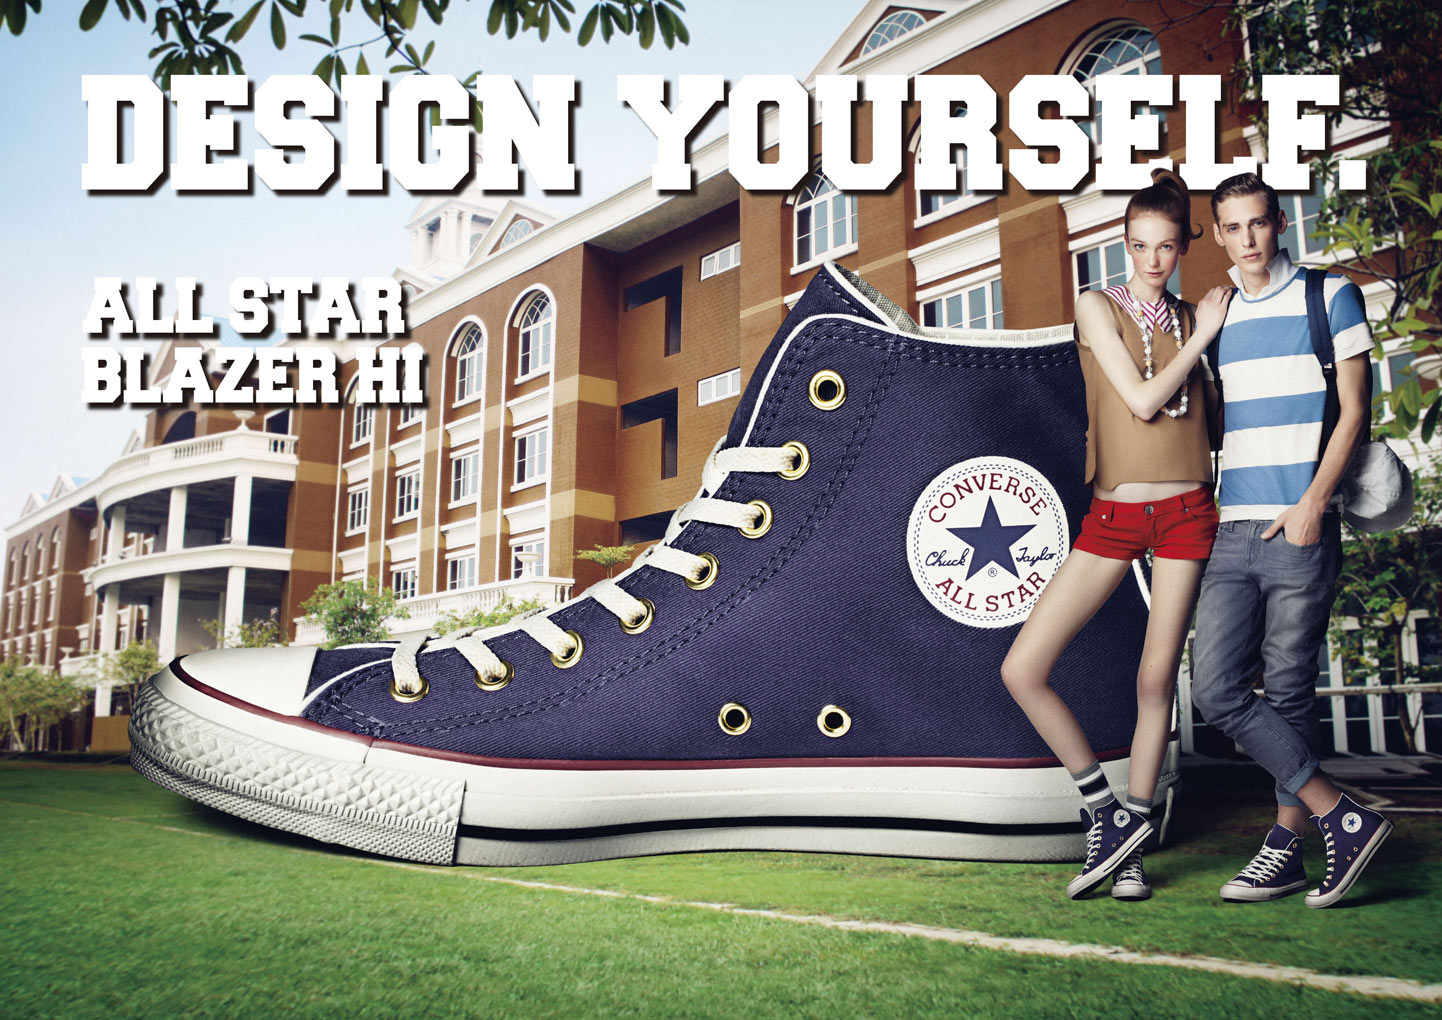 Jeremy Dufour0482_CONVERSE Design Yourself